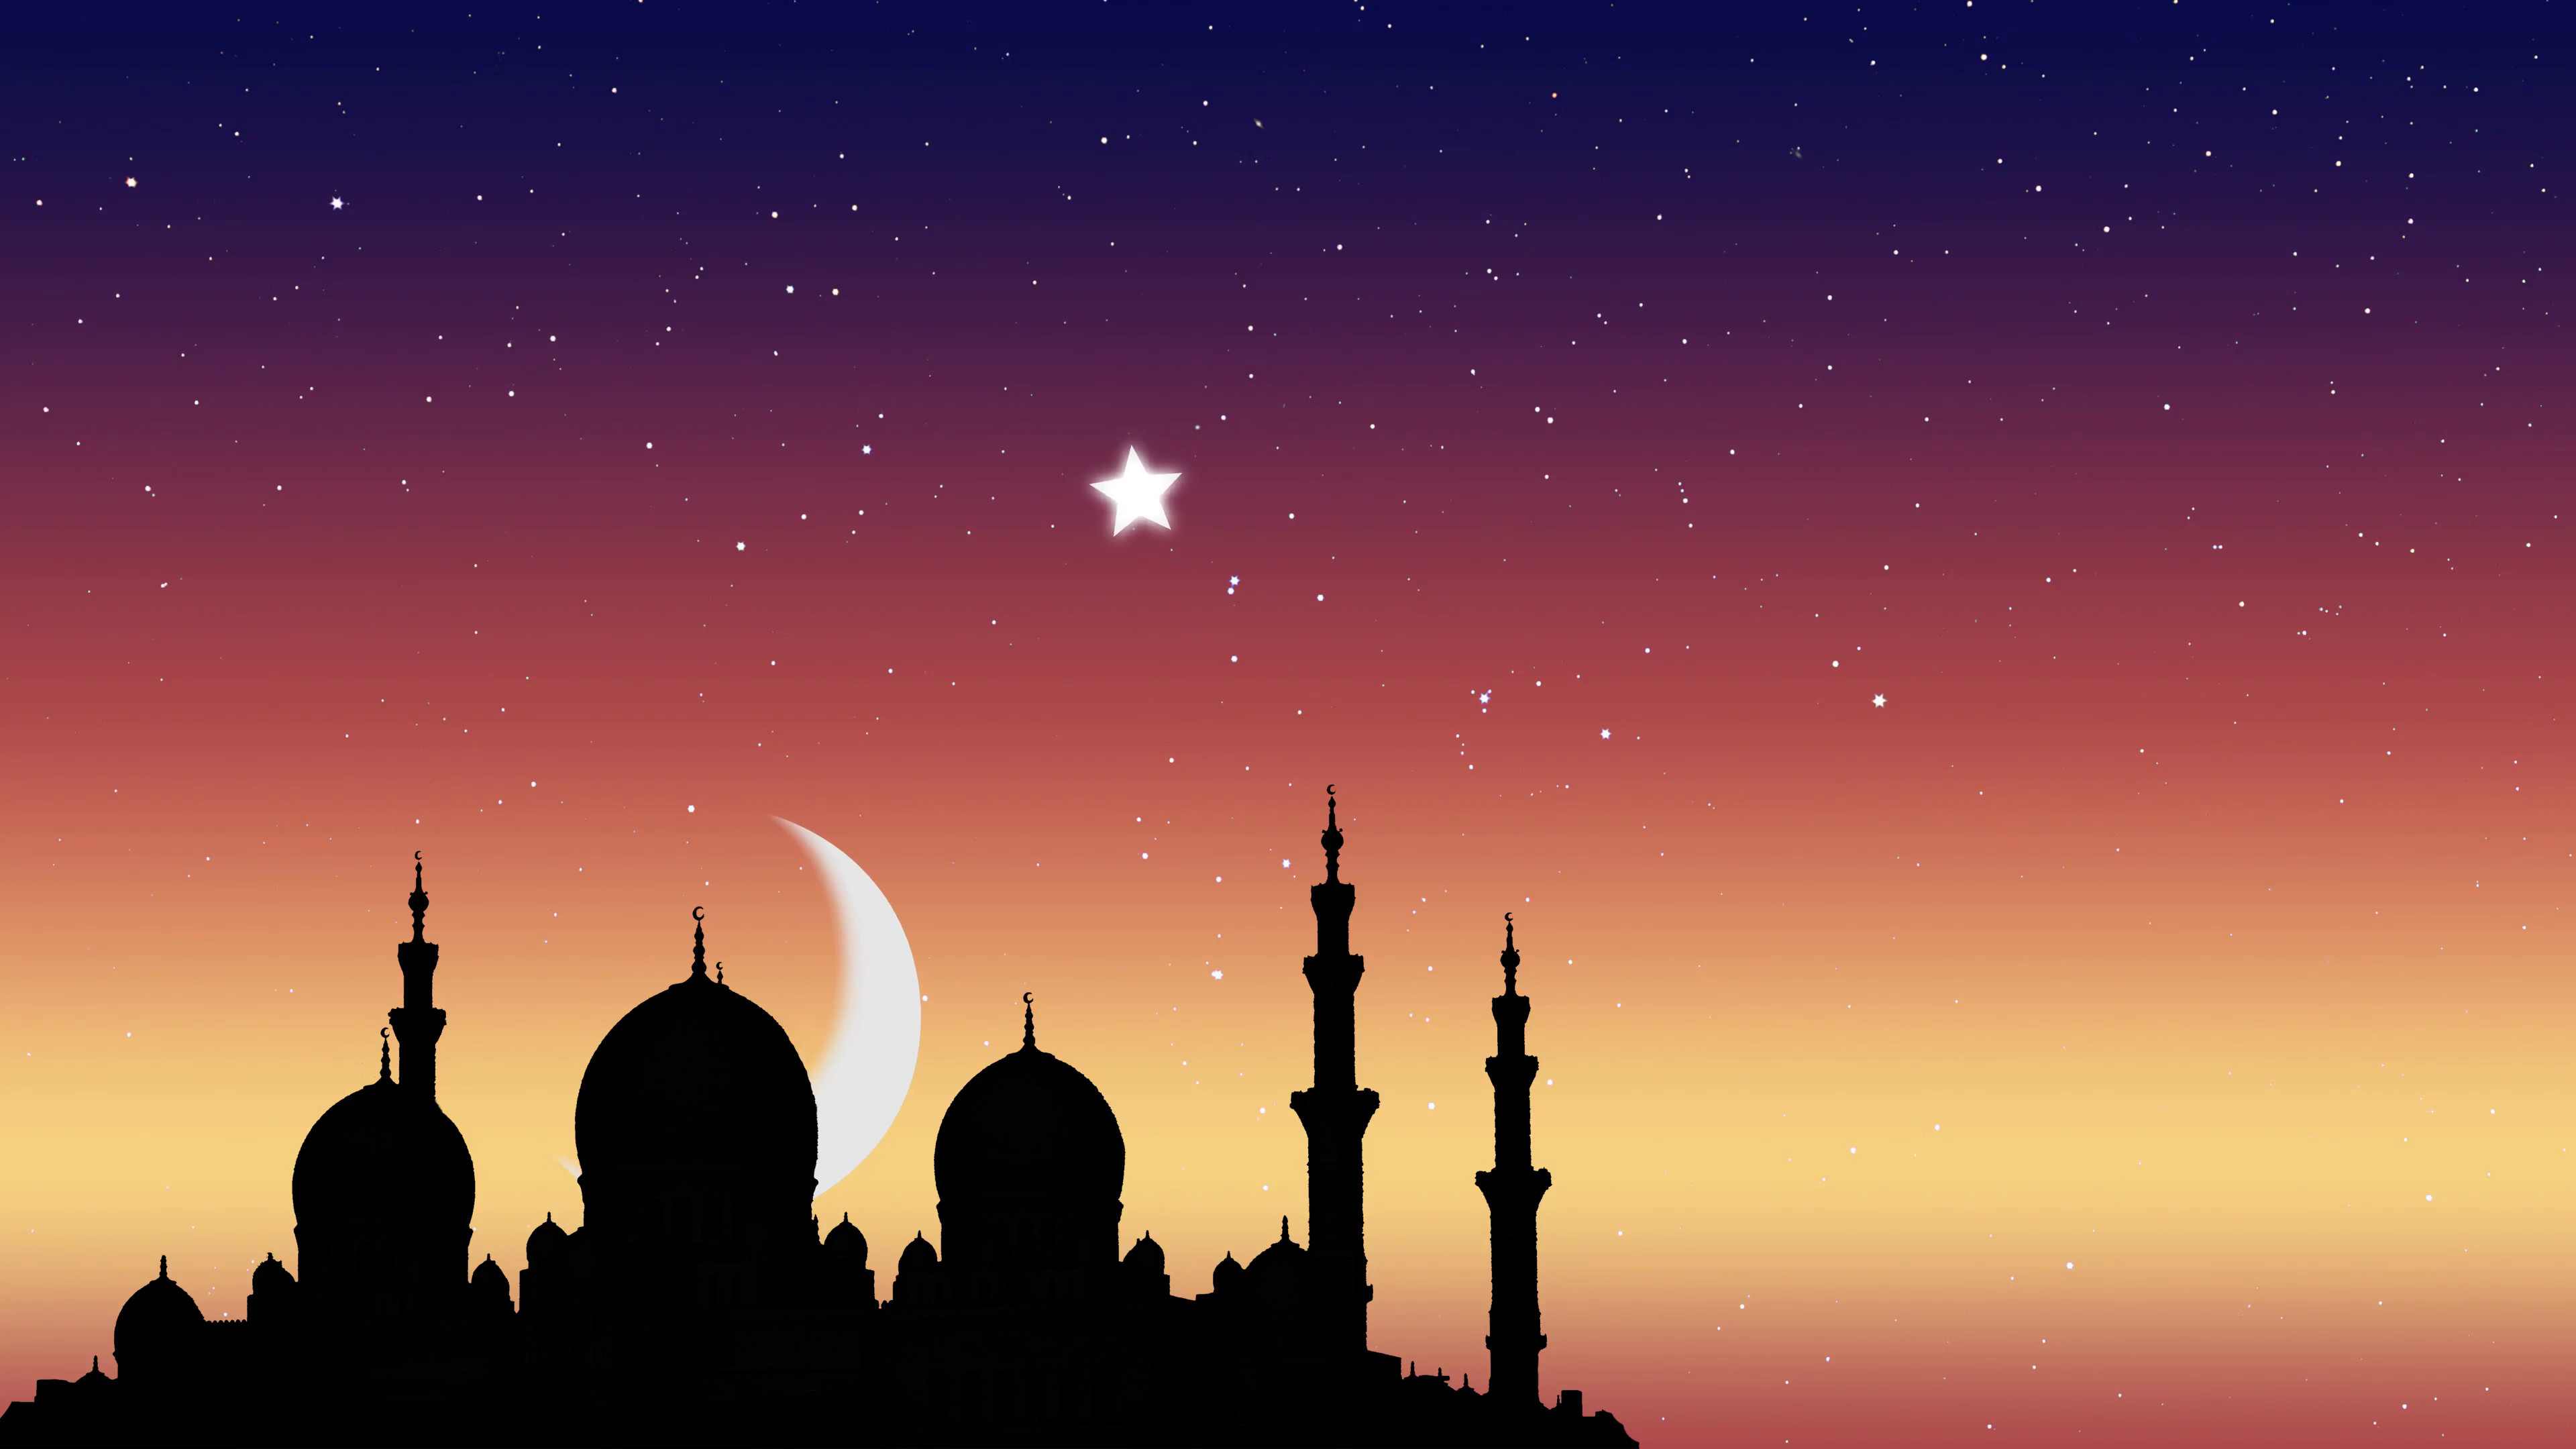 Muslim Wallpapers (51+ Background Pictures